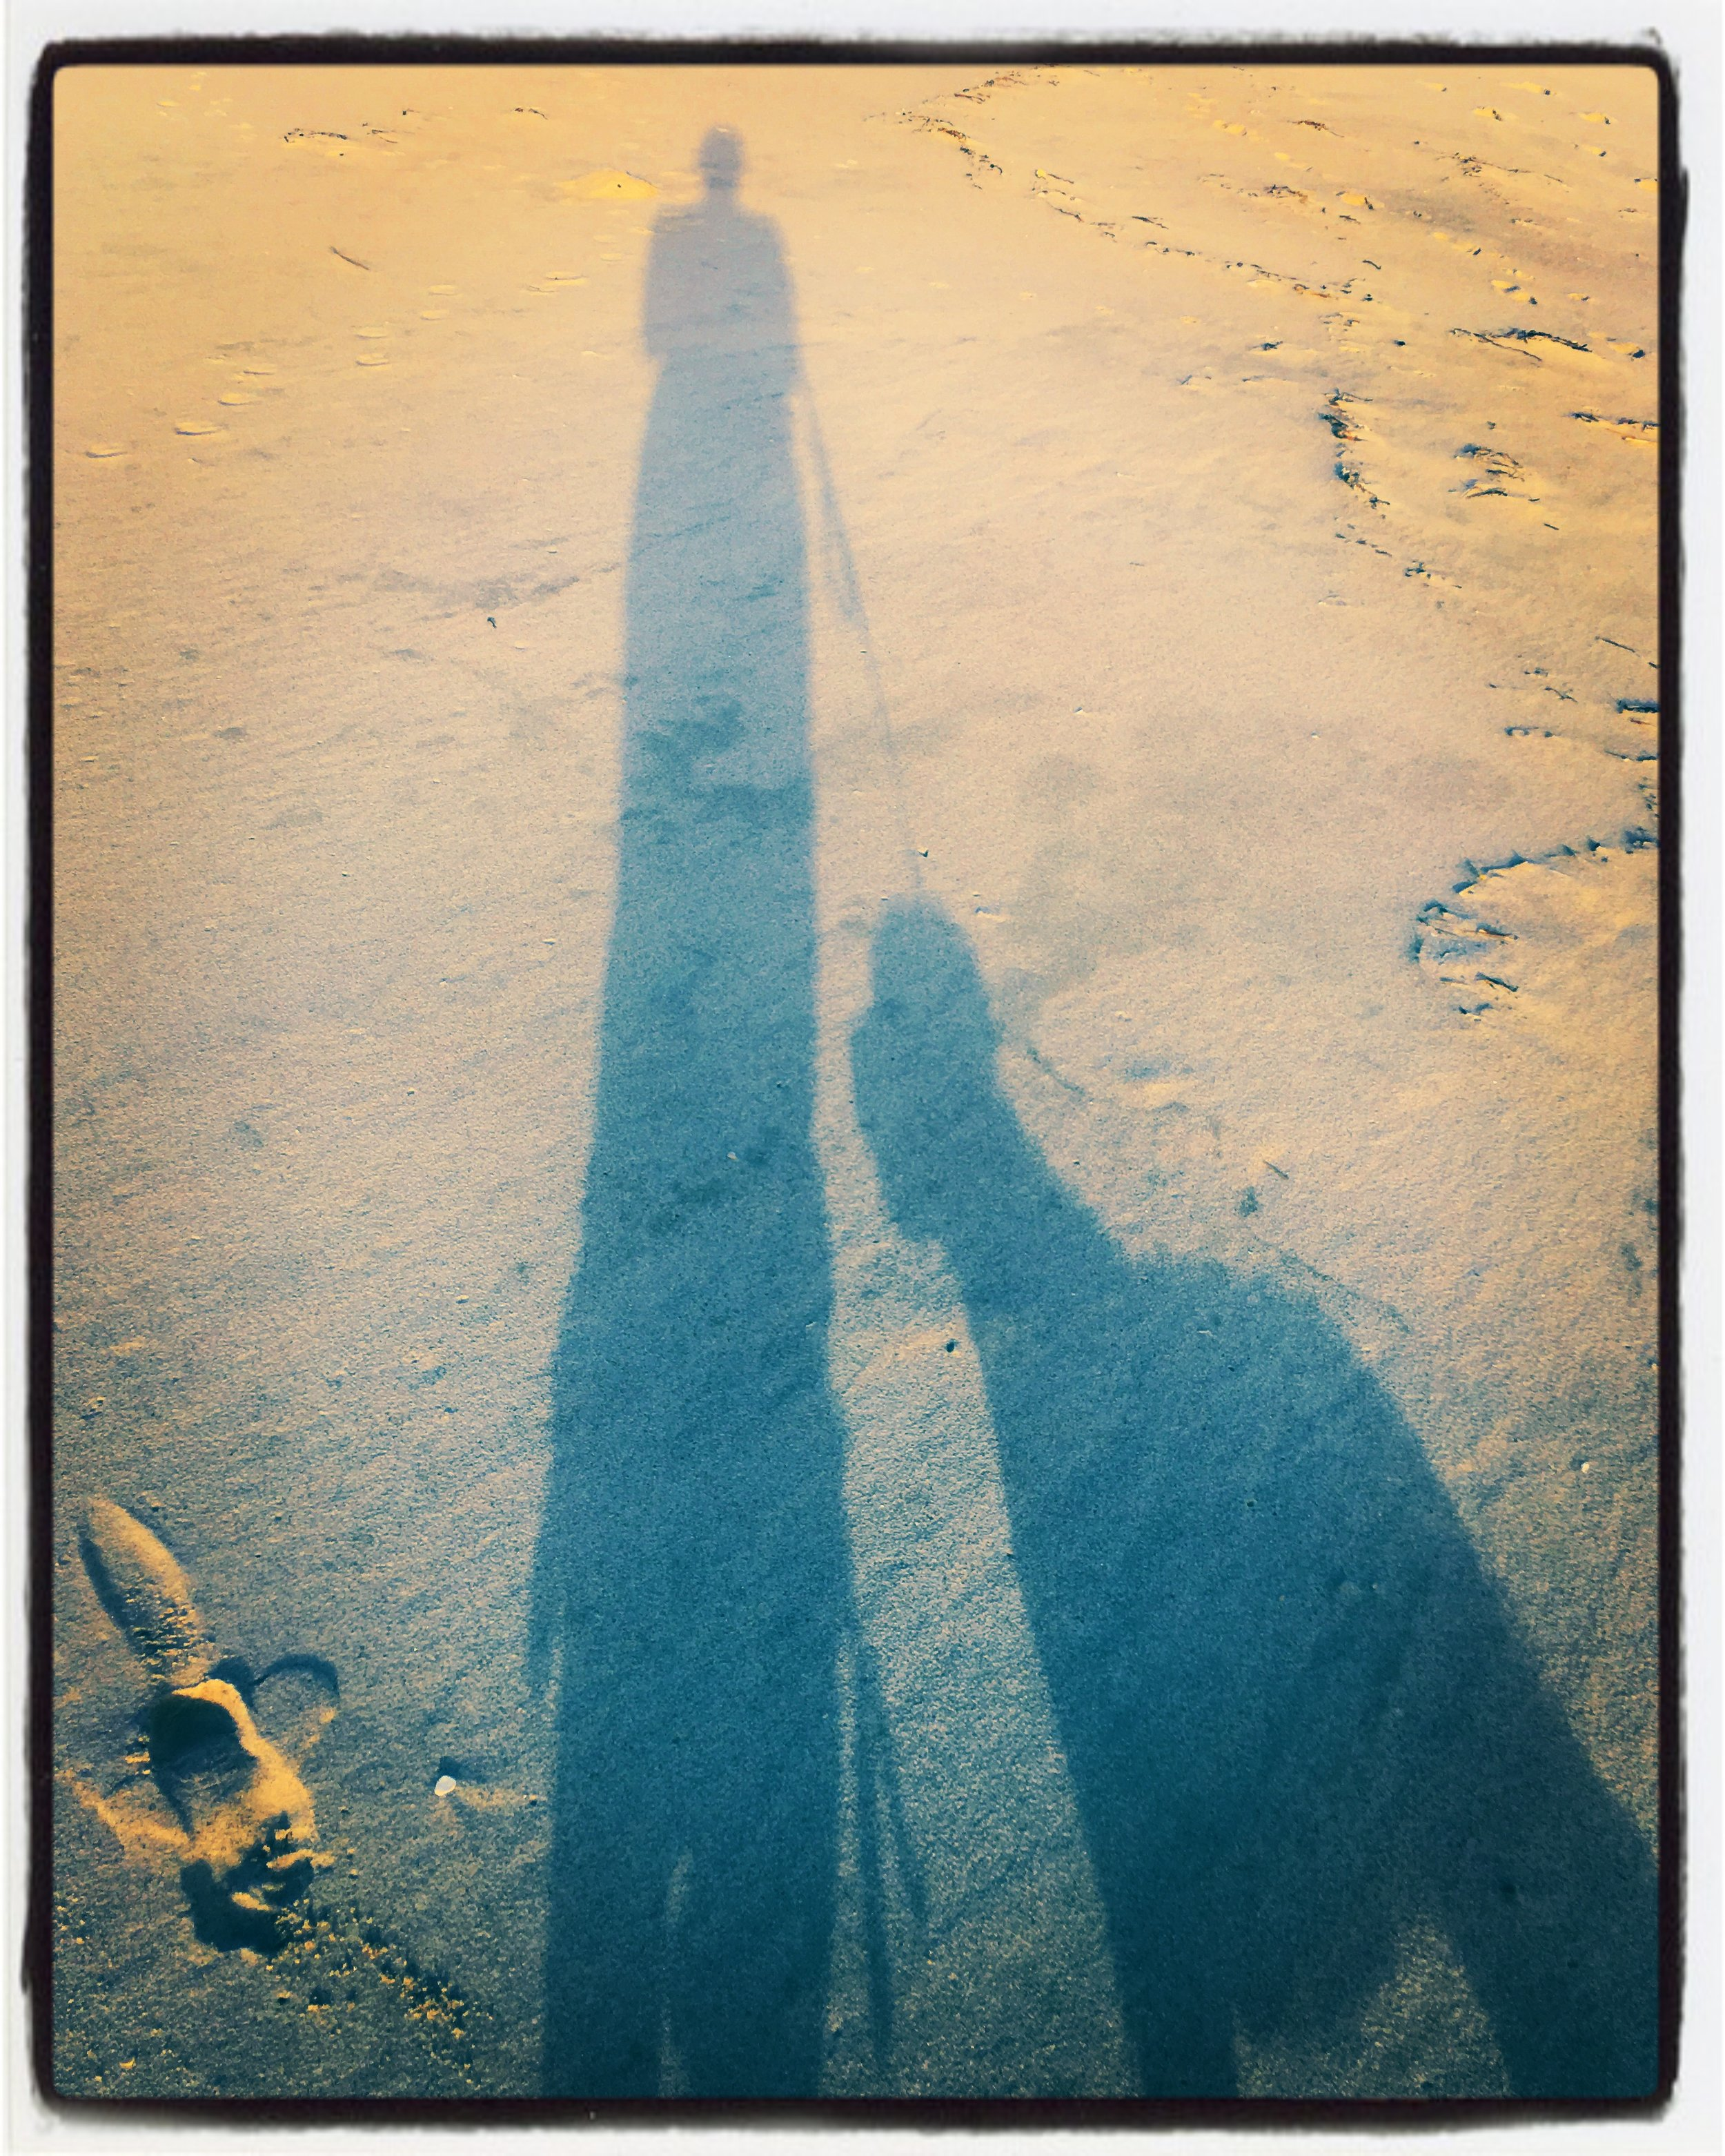 Me and My Shadows: Joy is being on a beach with your dog. Period. The end.